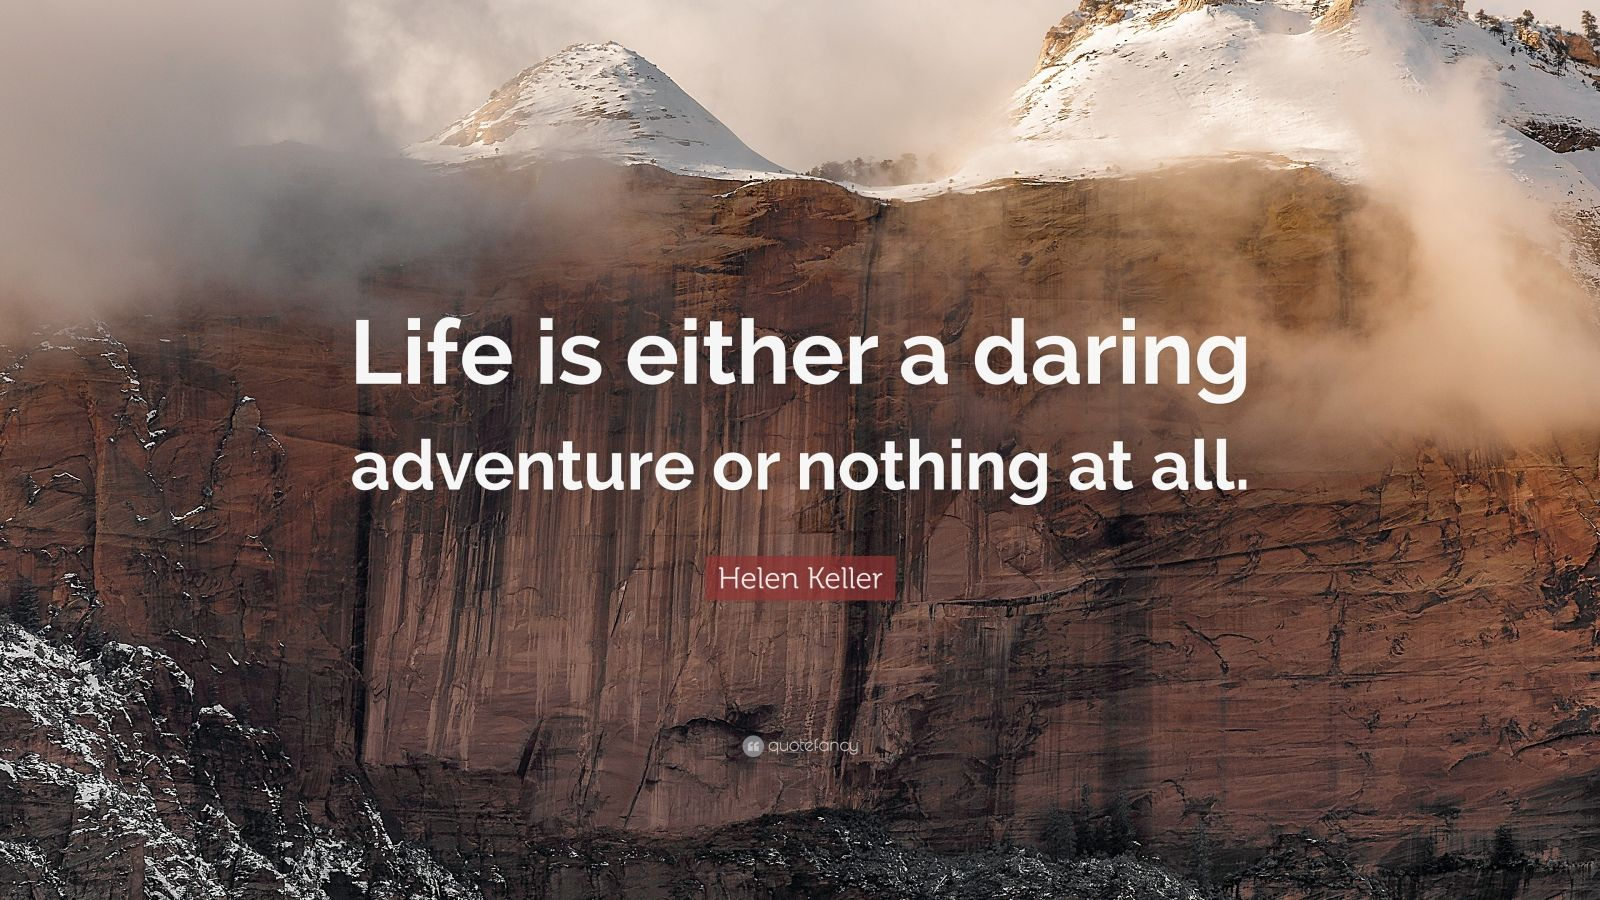 Dalai Lama Quotes Wallpapers Helen Keller Quote Life Is Either A Daring Adventure Or